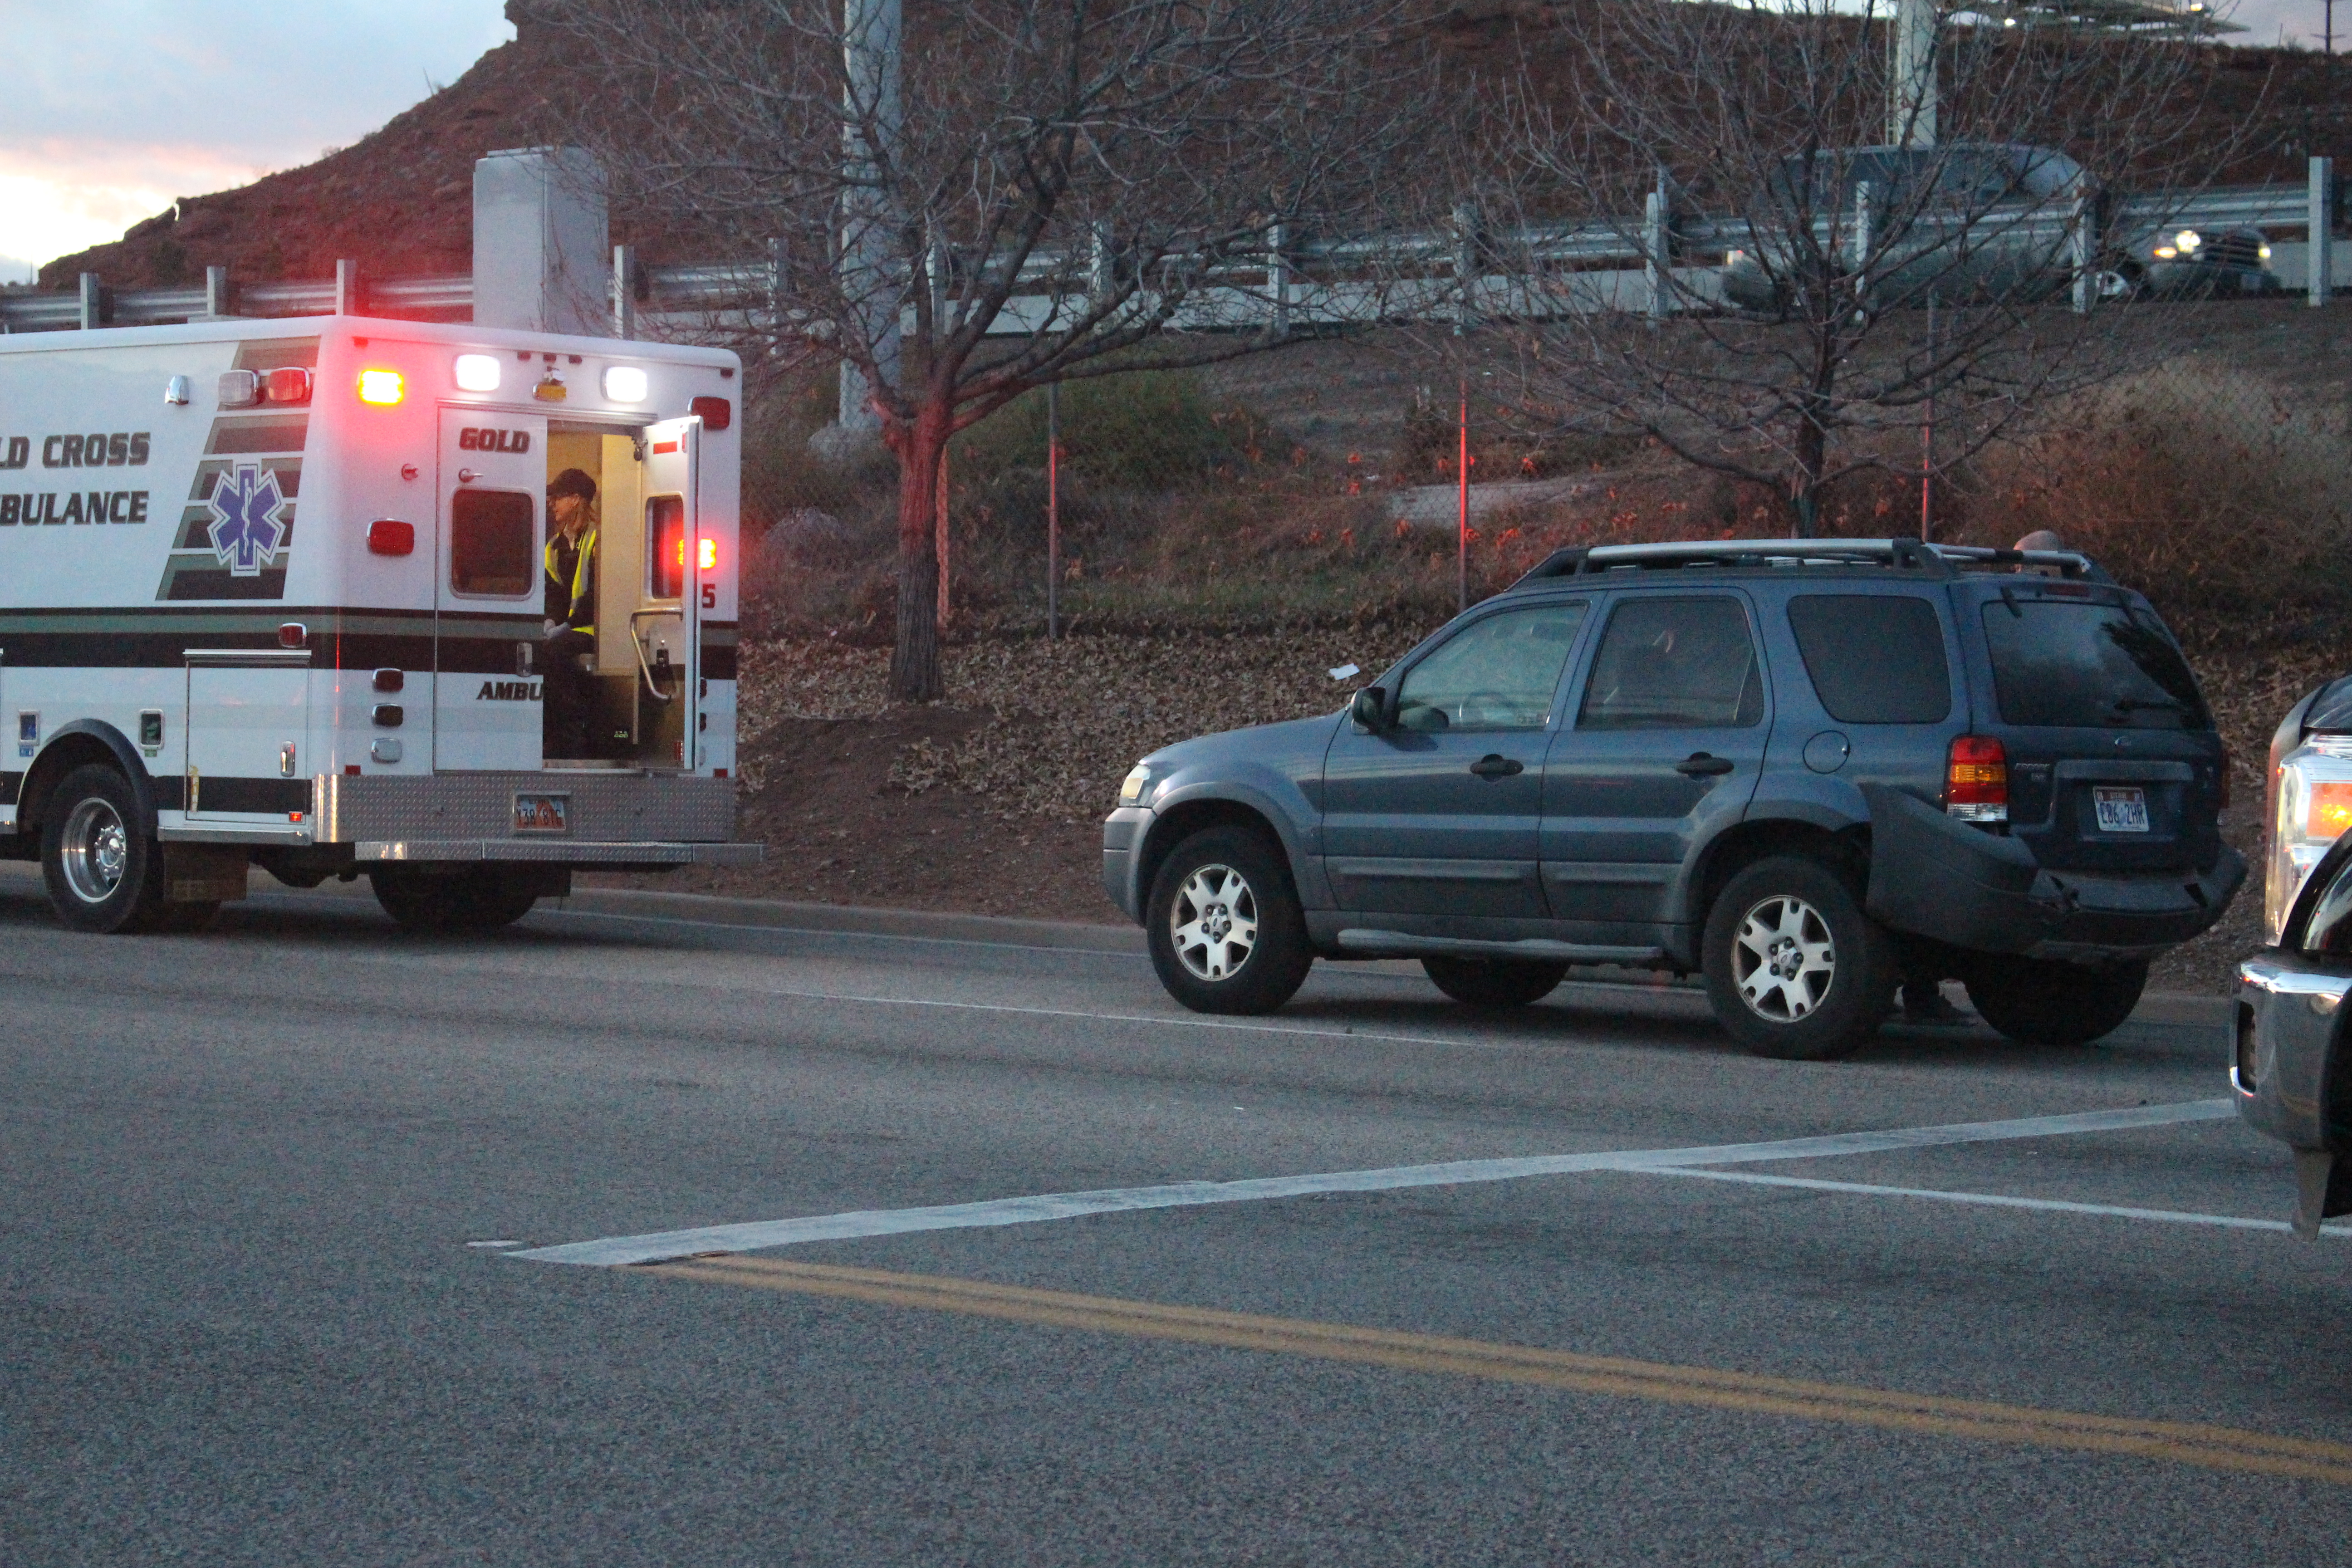 Emergency personnel respond to the scene of a collision on Red Cliffs Drive, St. George, Utah, Jan. 9, 2017 | Photo by Joseph Witham, St. George News